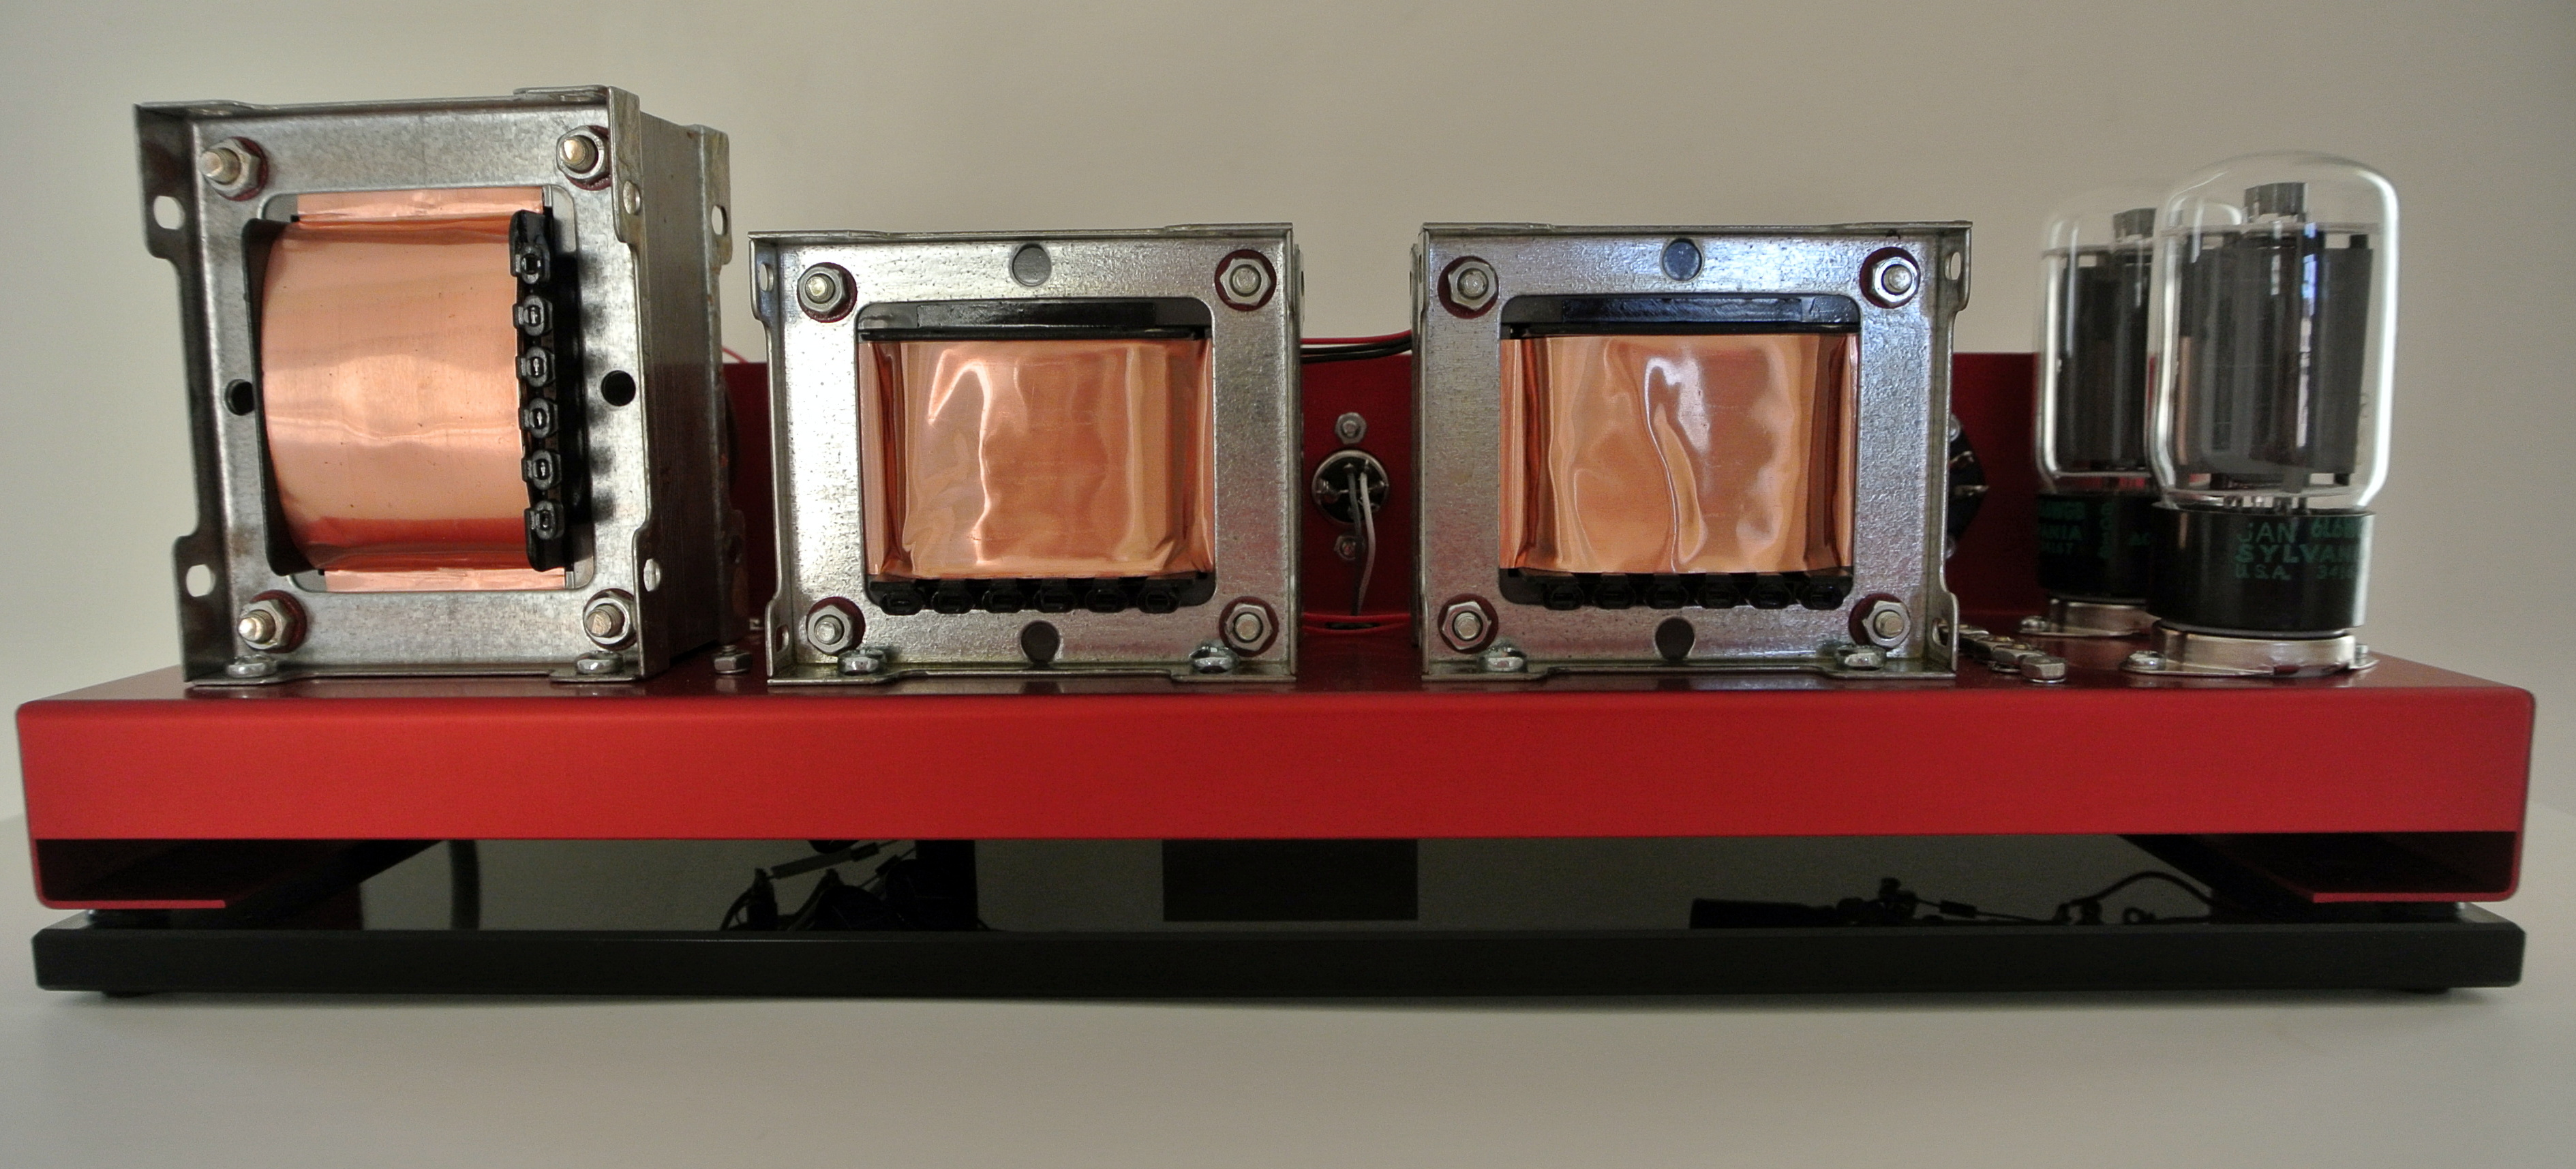 6L6 Tube Amplifier Set on Glass Plinth